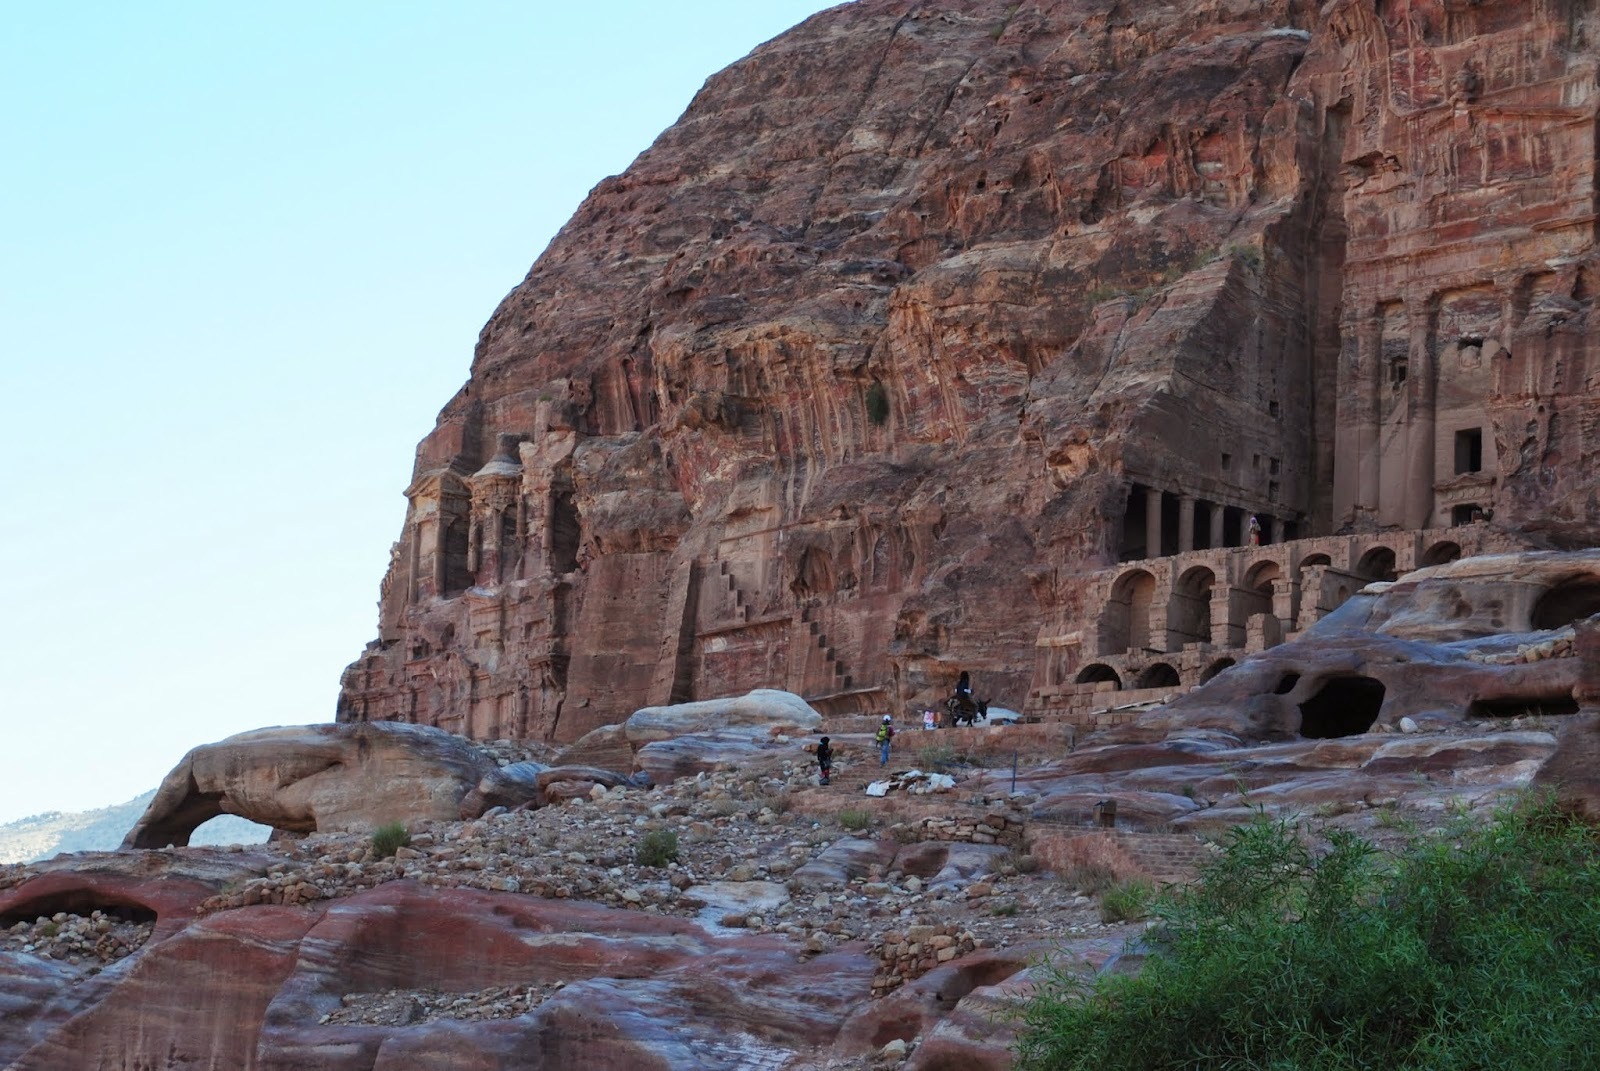 My Photos: Jordan -- Petra -- The Urn Tomb & Royal Tombs